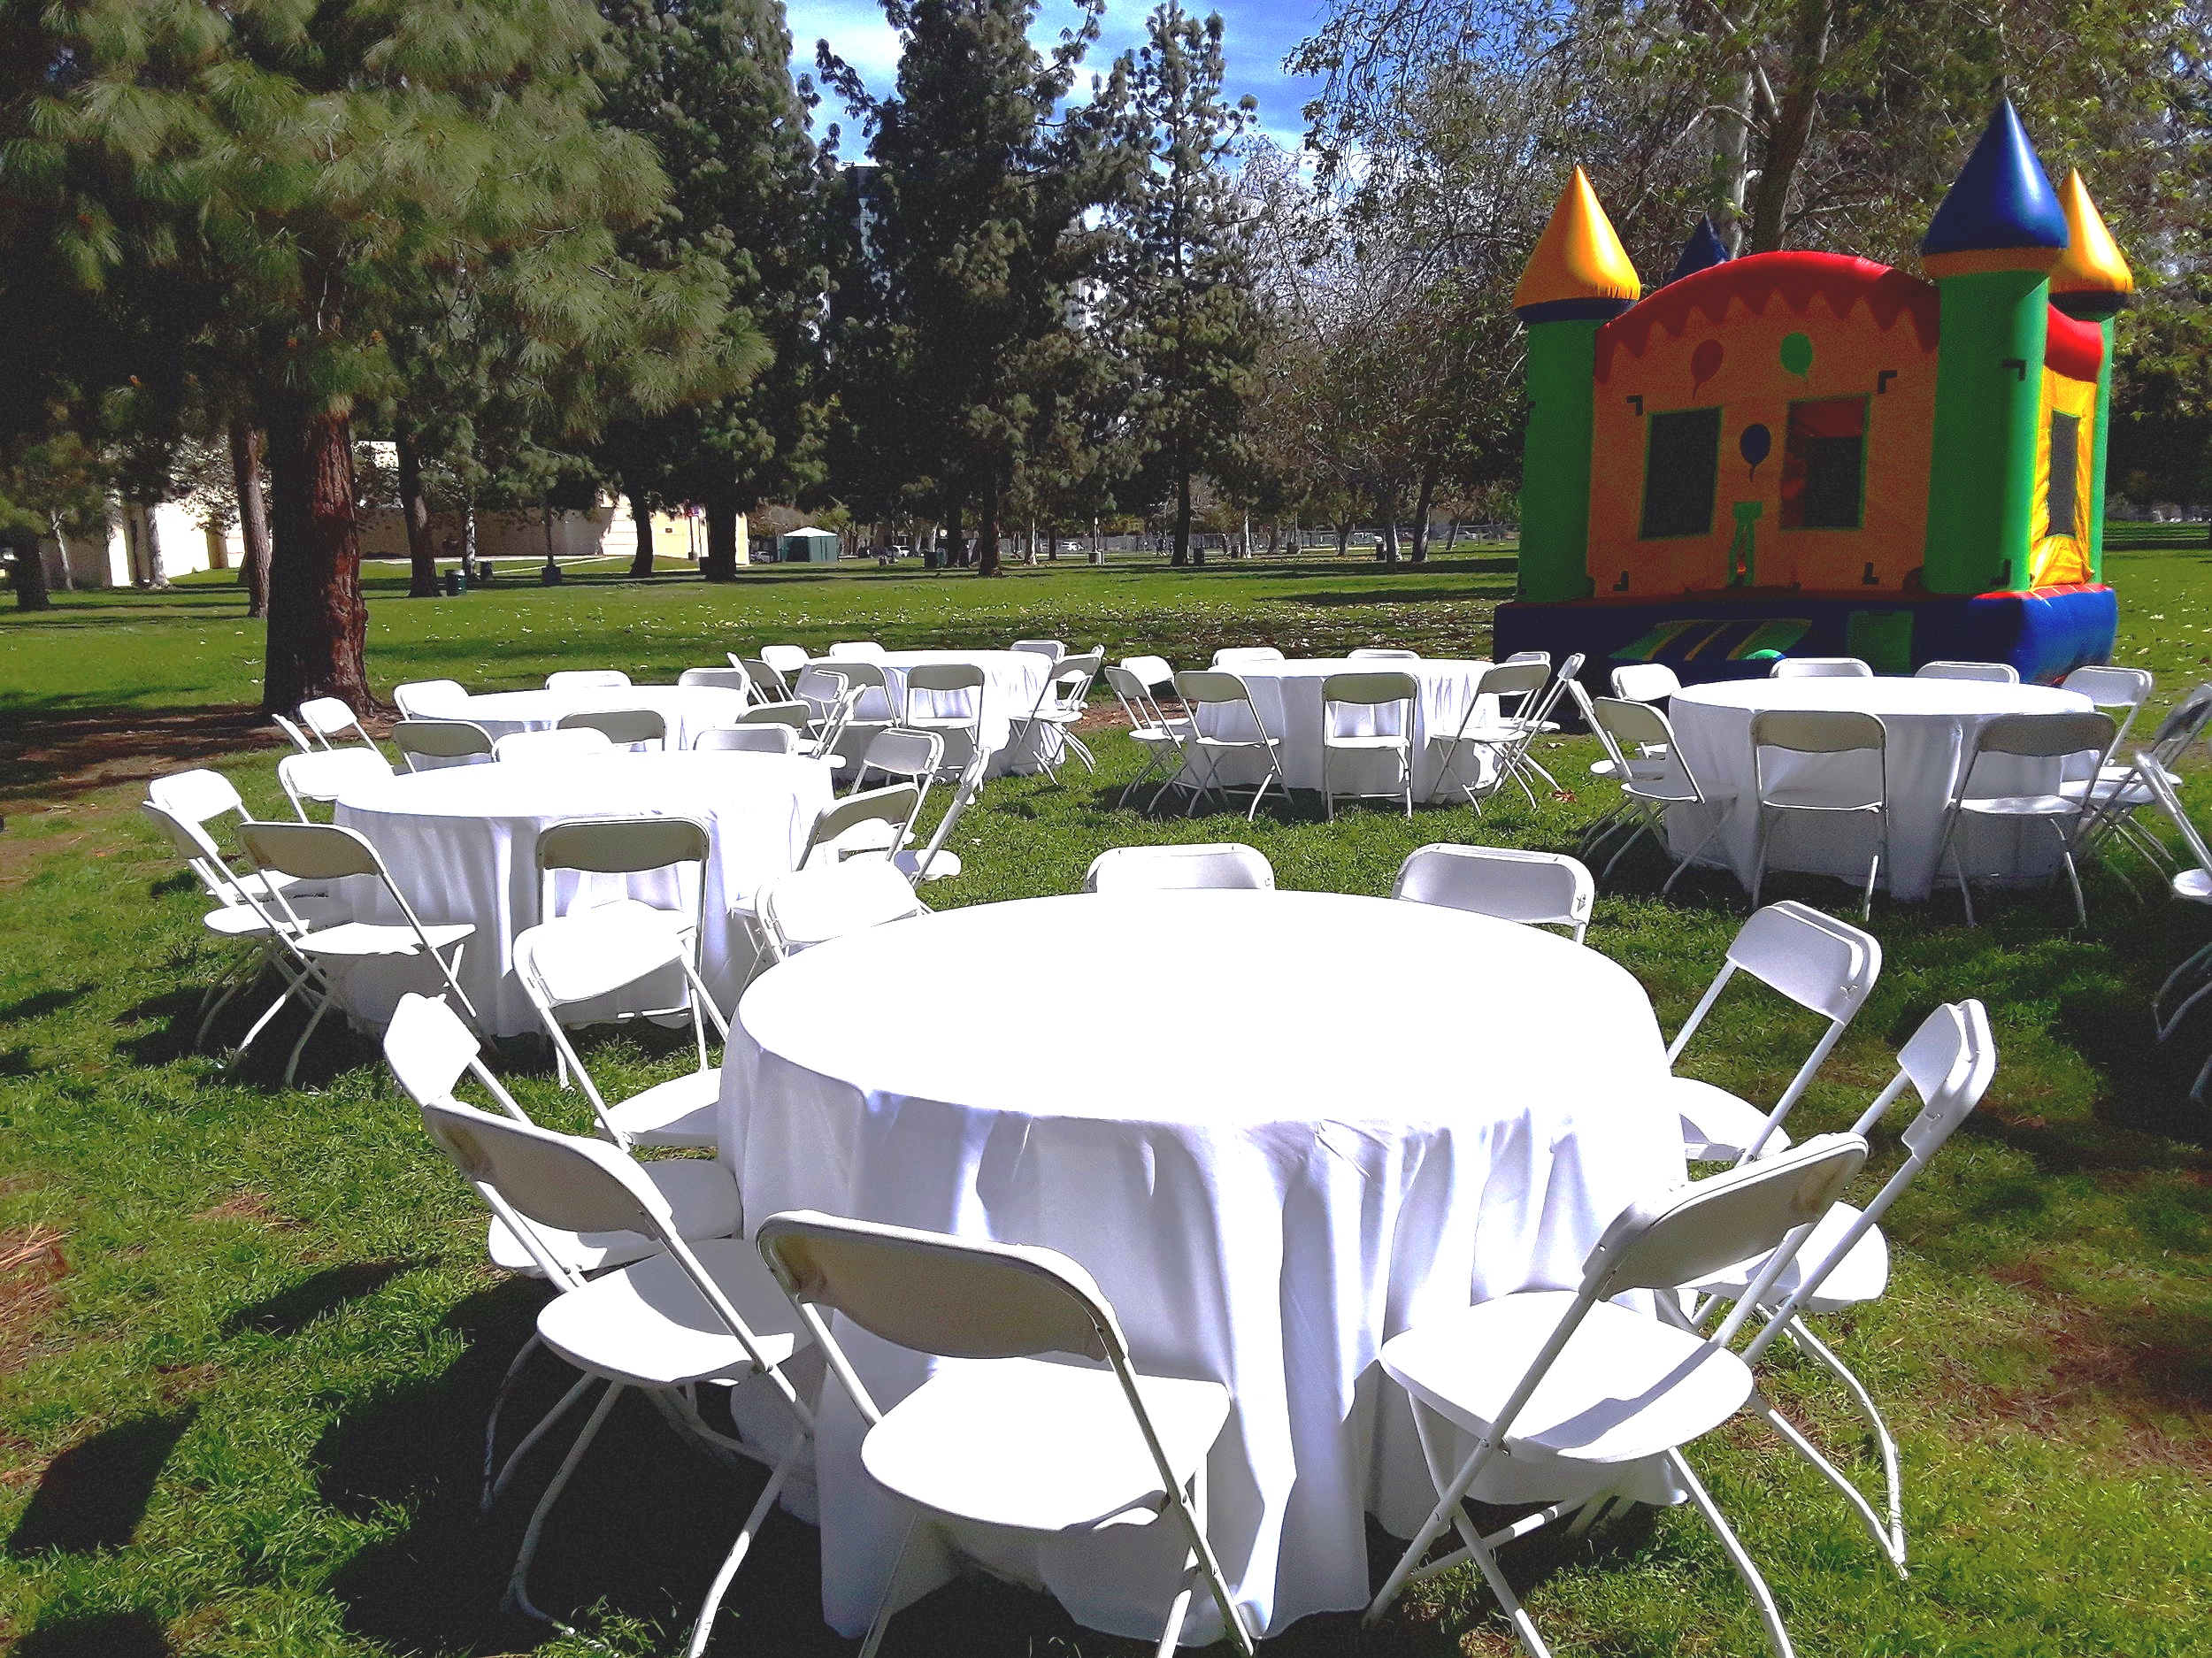 Celebrating Special Occasion? - Check out our rentals for your next party